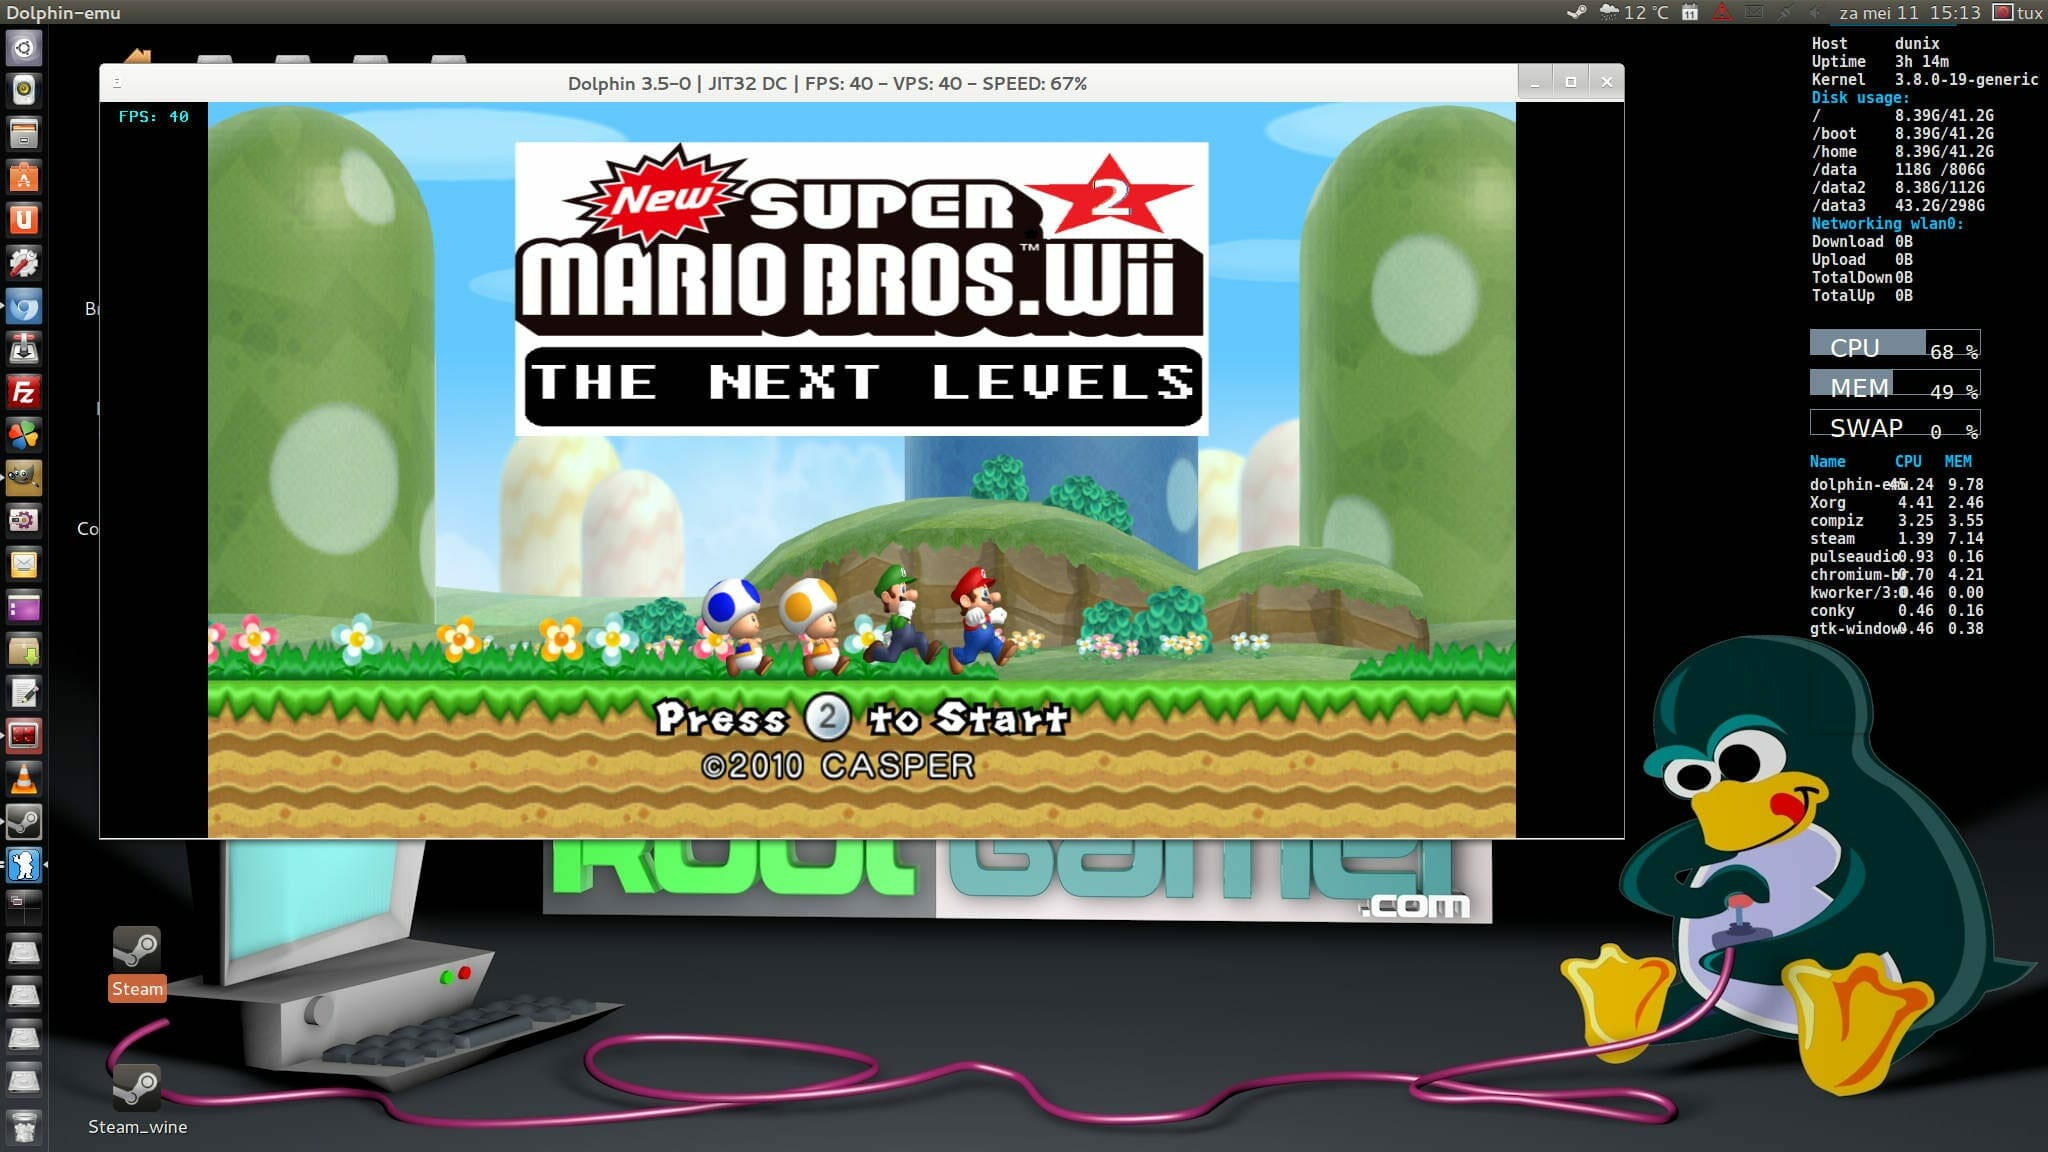 dolphin emulator free download for windows 7